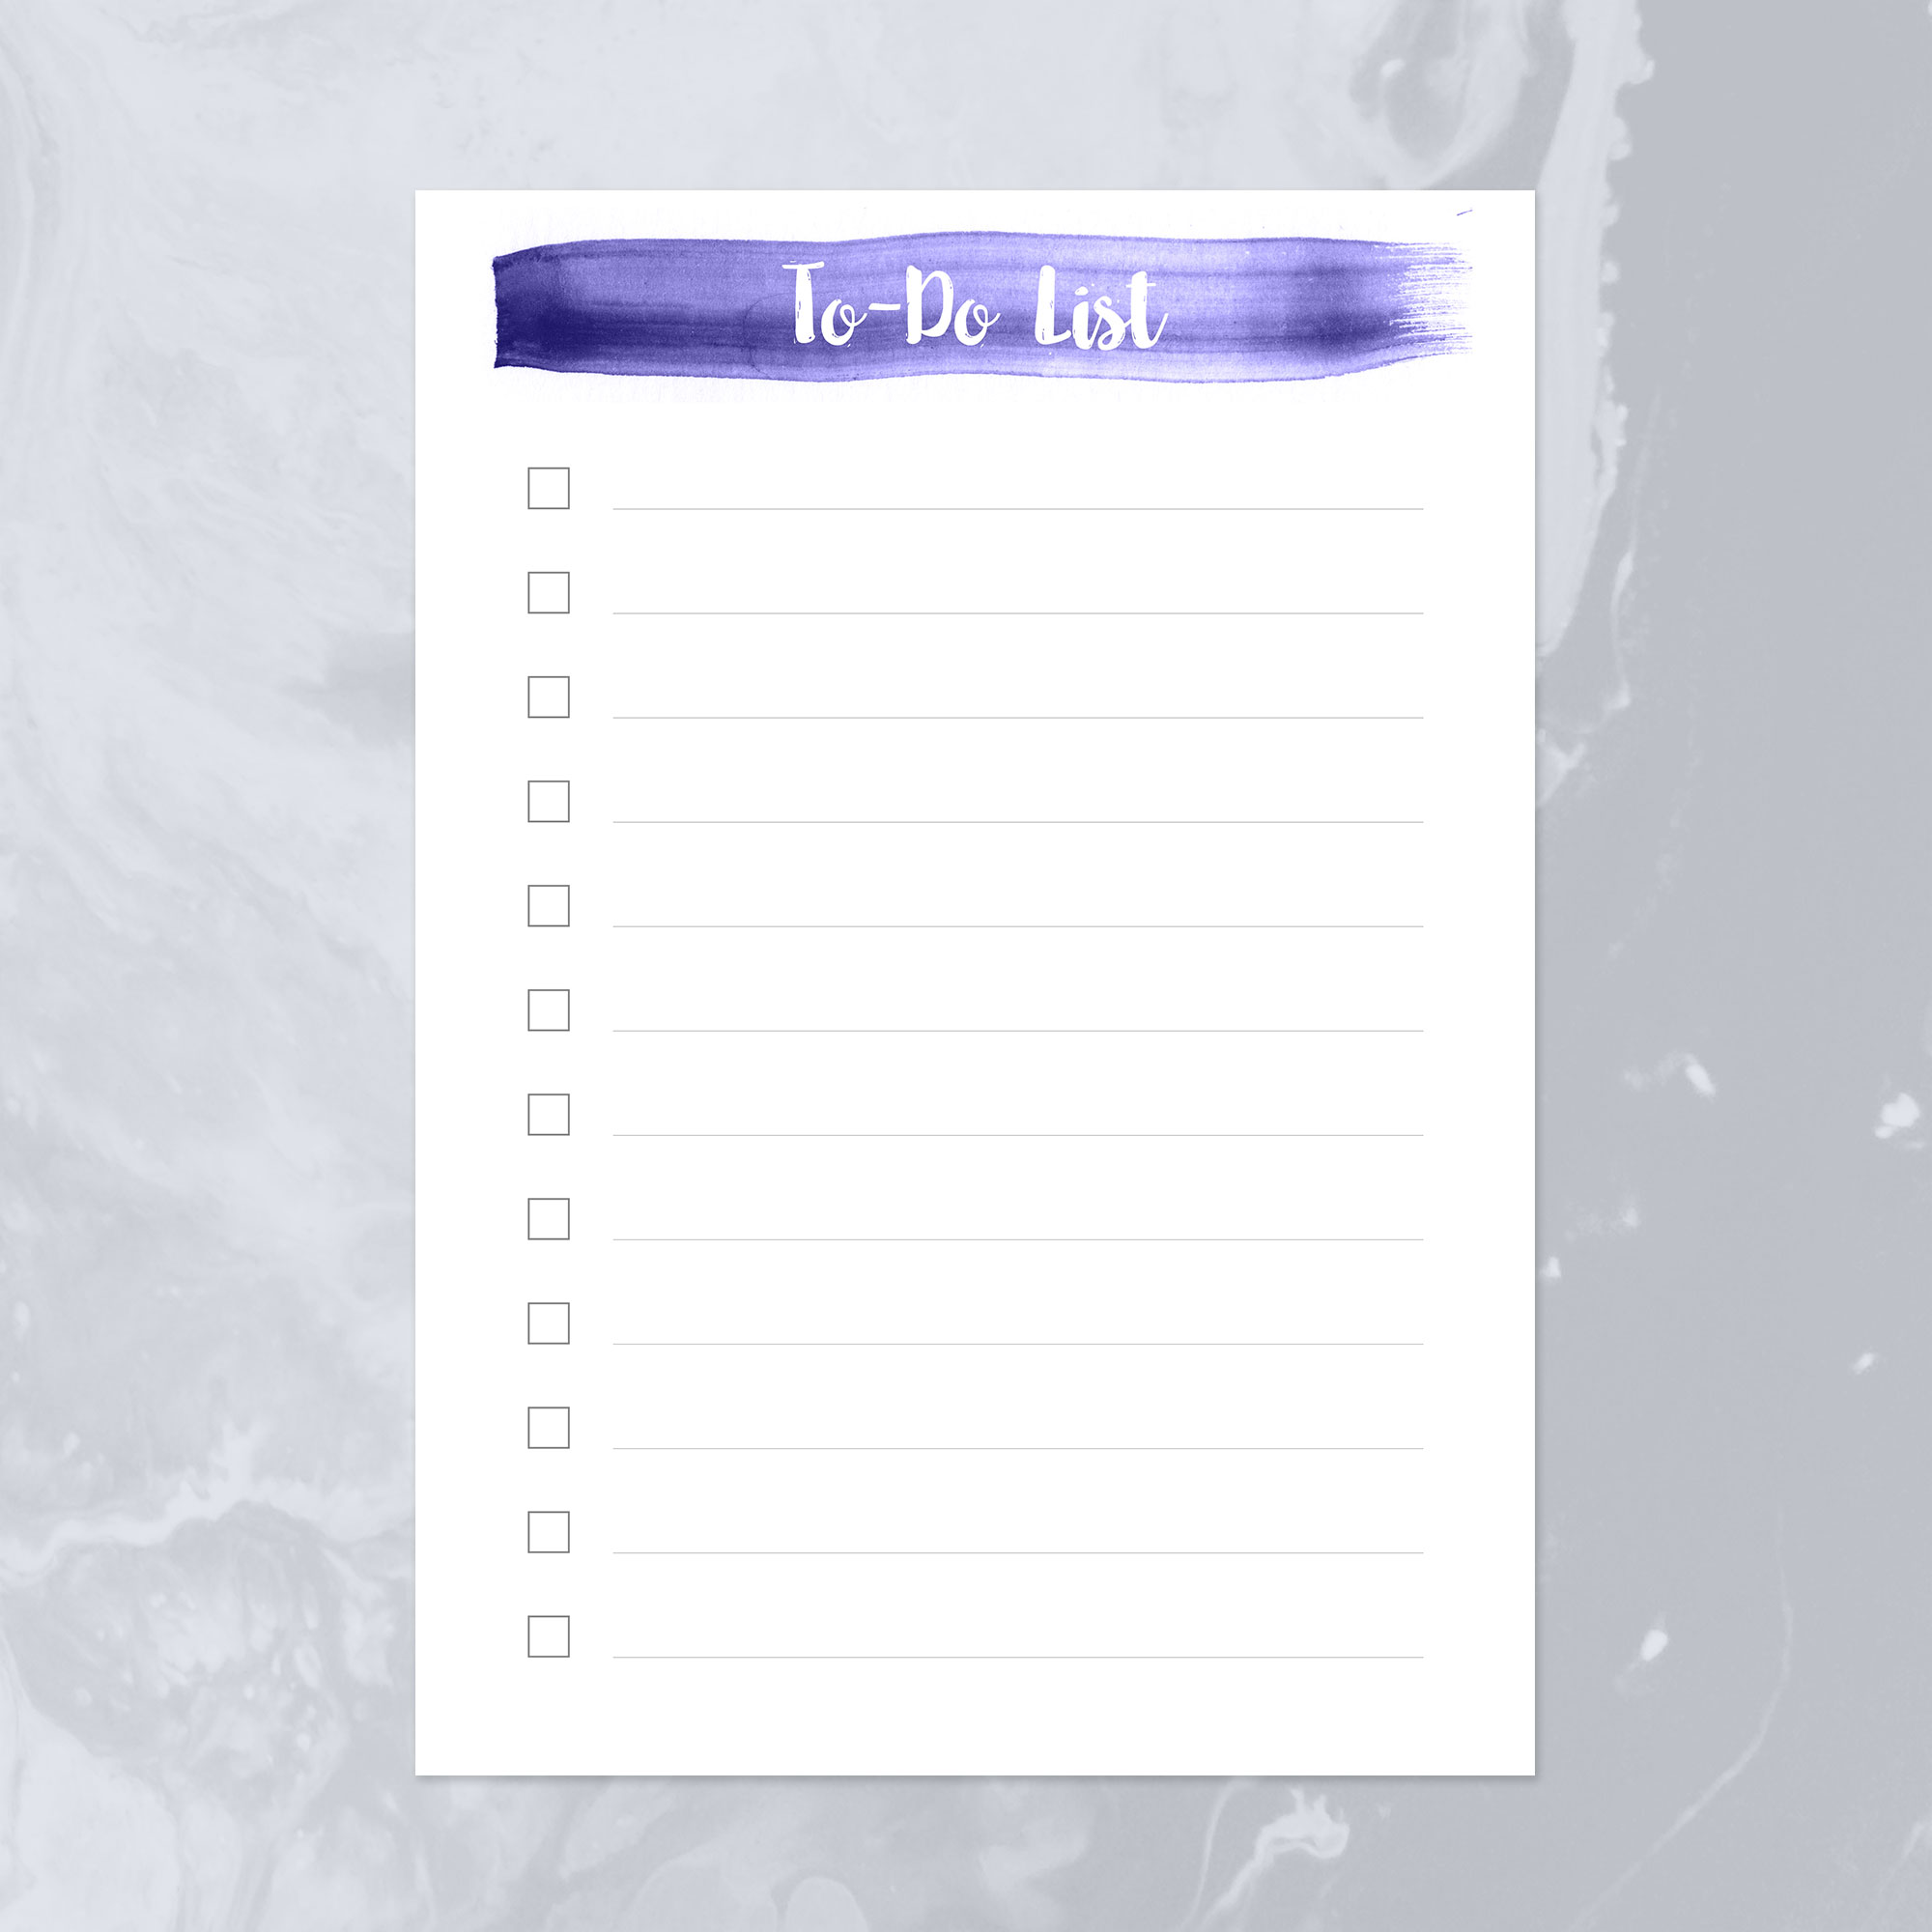 planning-printables-to-do-swatch2.jpg